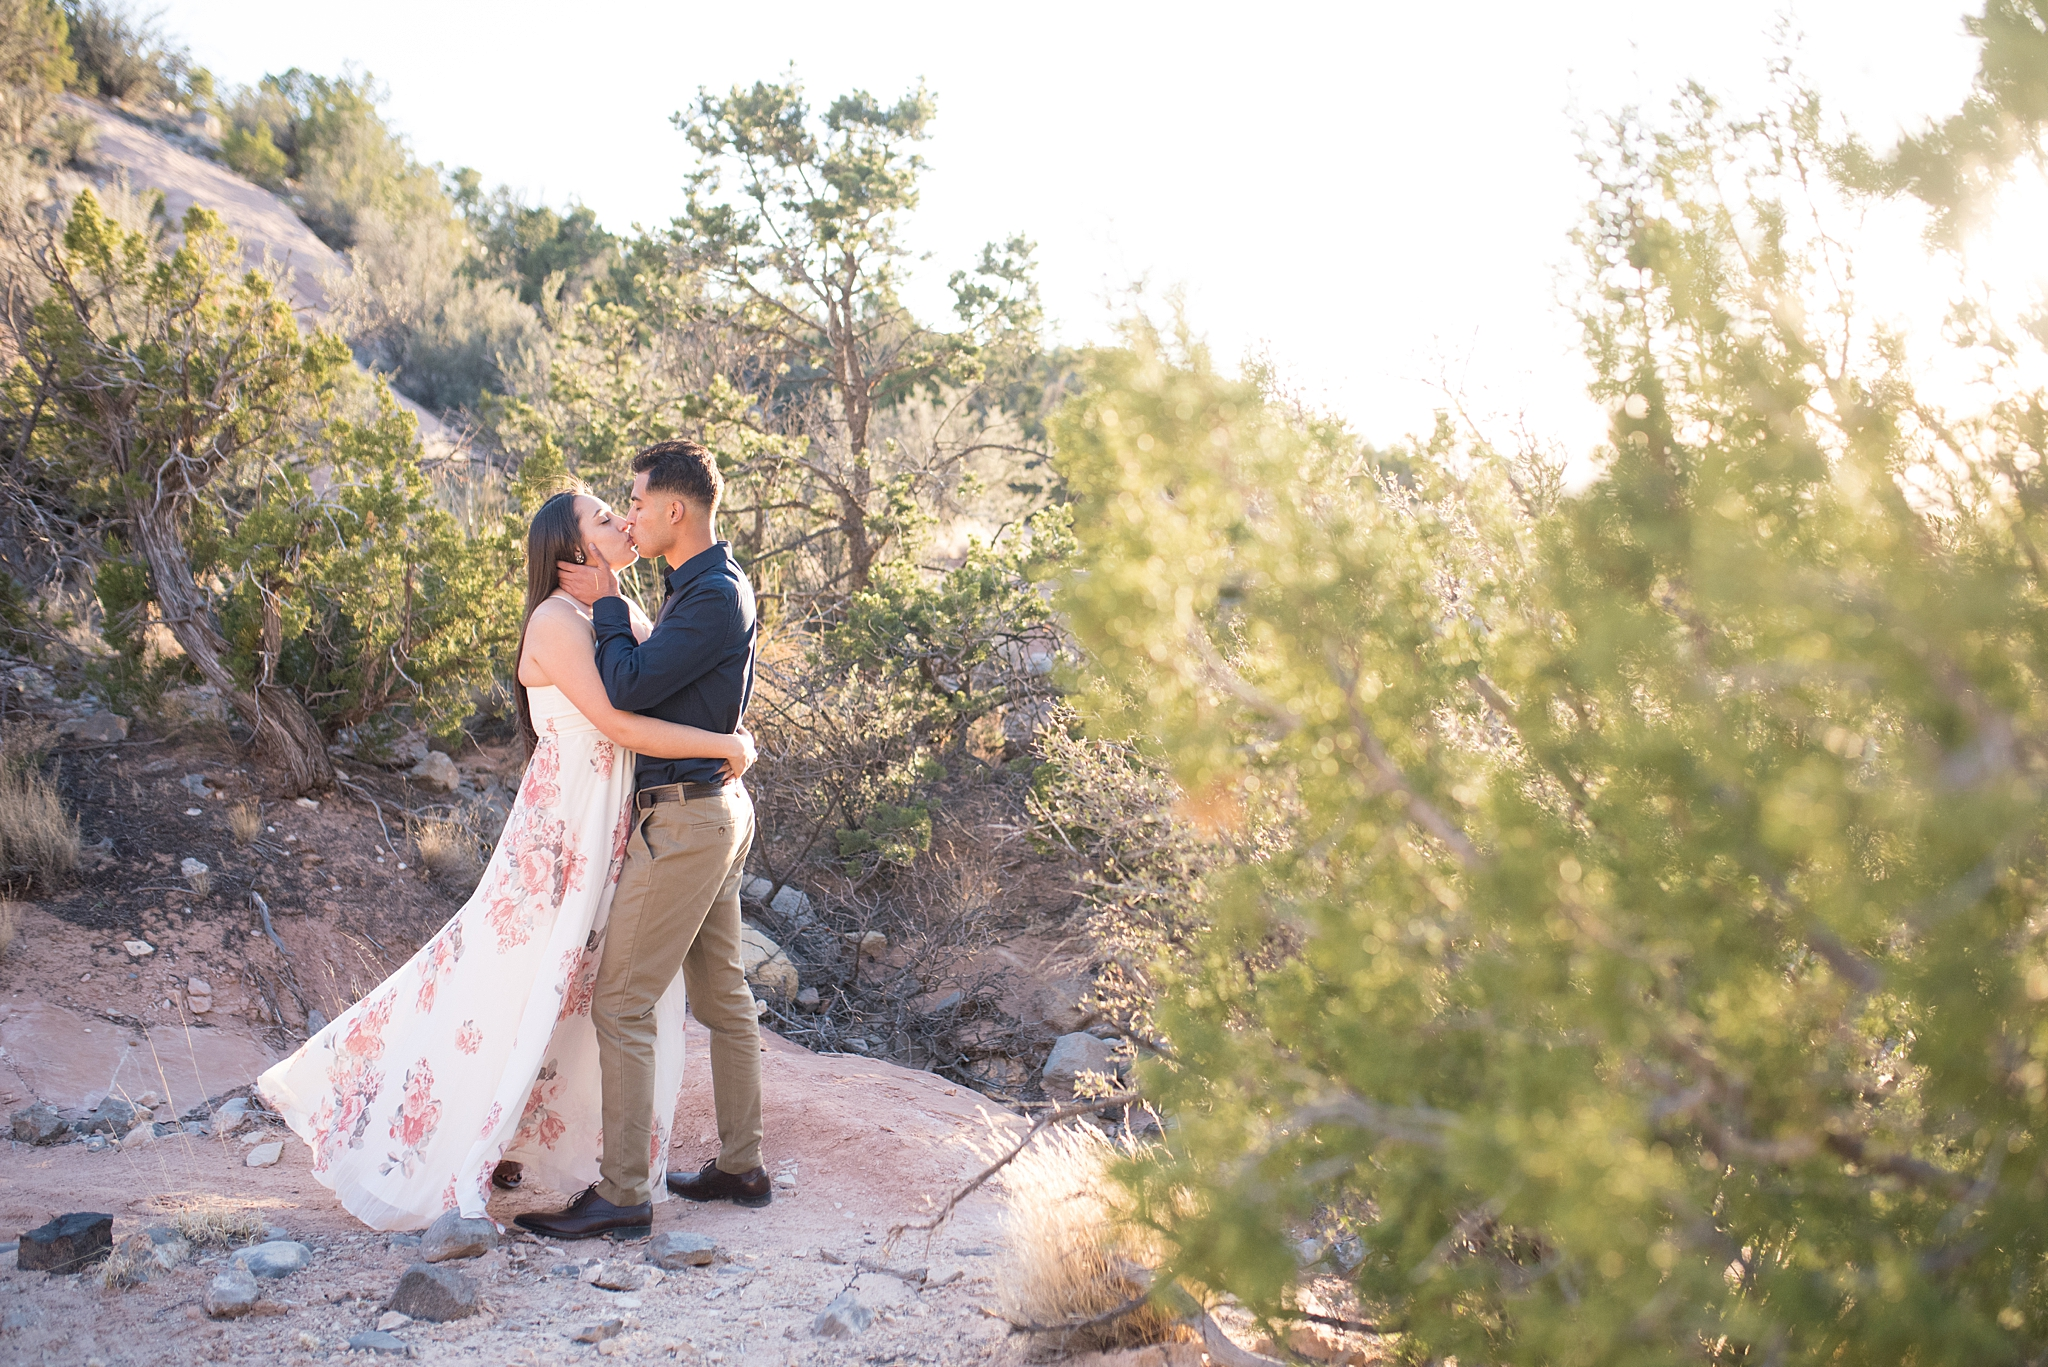 bosque brewery engagement session placitas mountains foothills albuquerque wedding photography new mexico wedding photographer kayla kitts photography_0014.jpg